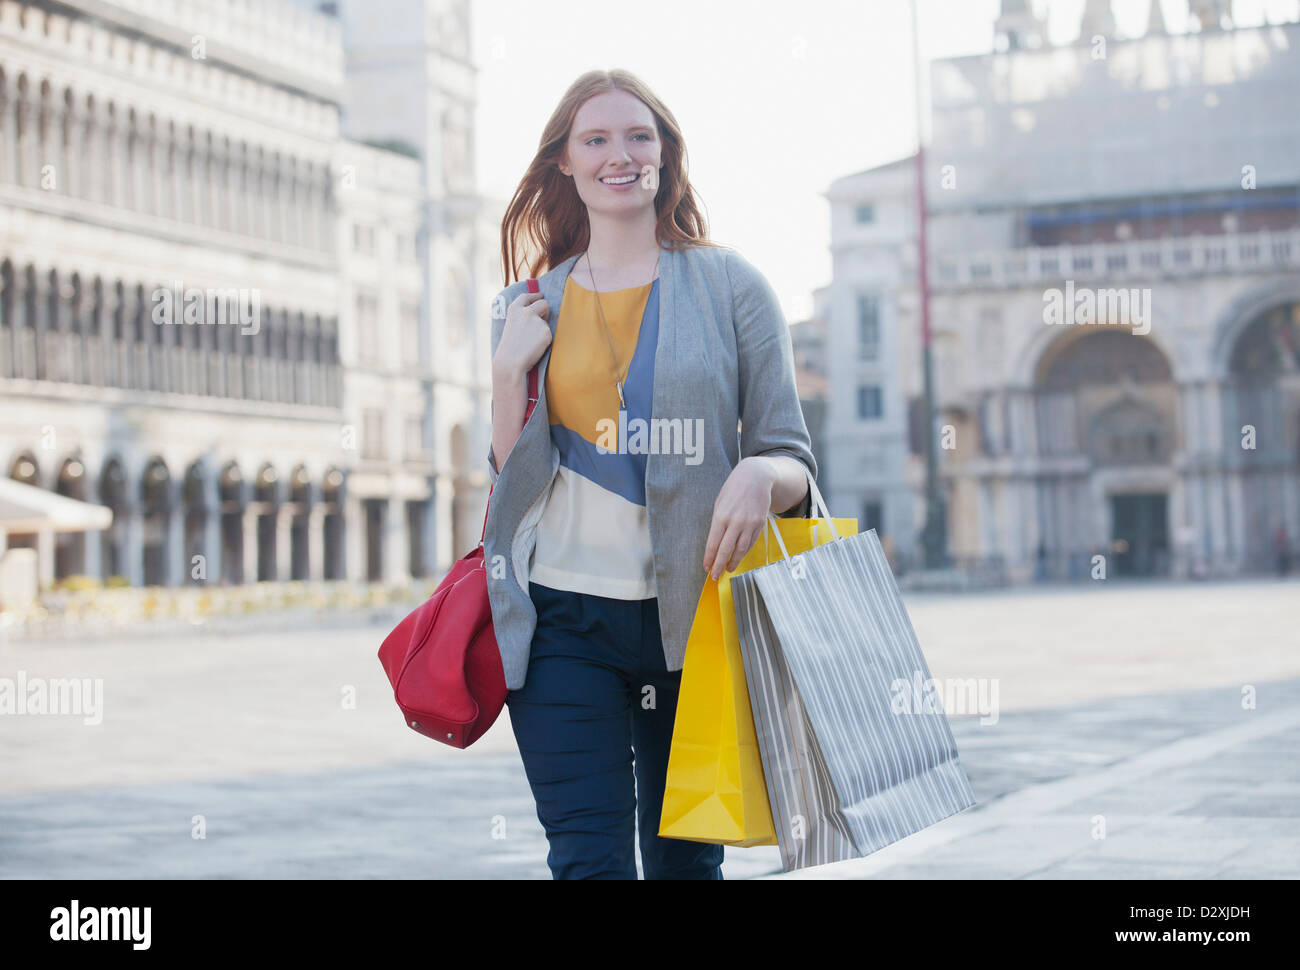 Smiling woman carrying shopping bags through St. Mark's Square in Venice - Stock Image